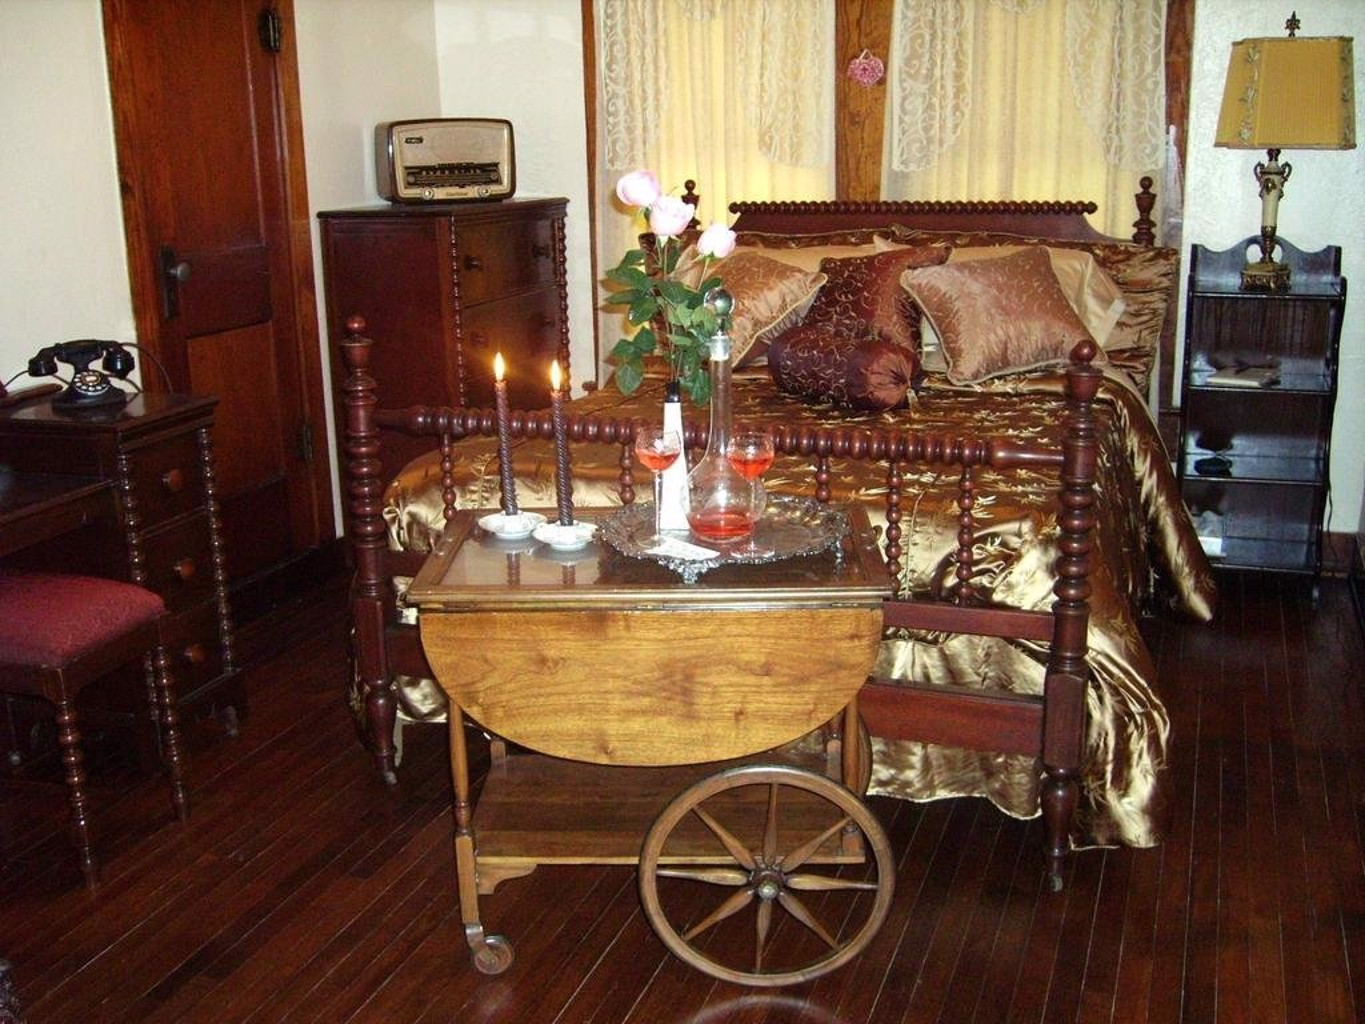 Alla's Historical Bed And Breakfast Spa And Cabana